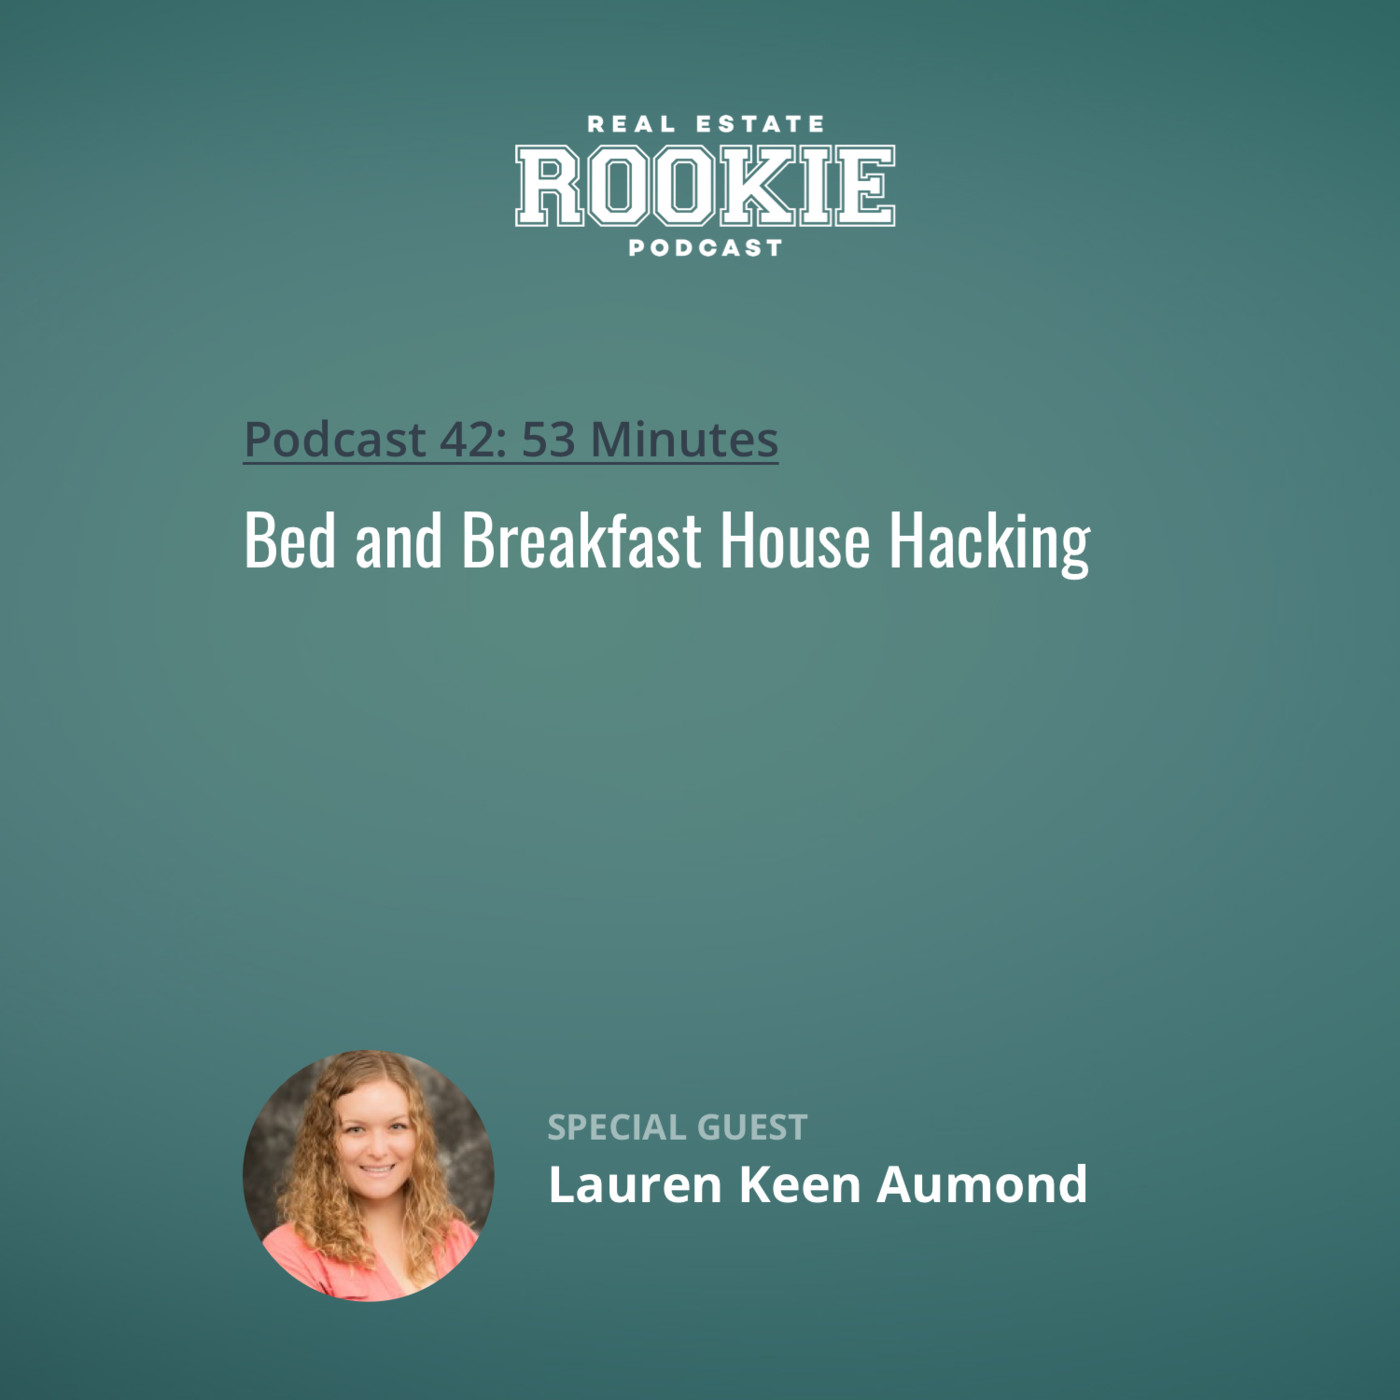 Bed and Breakfast House Hacking with Lauren Keen Aumond